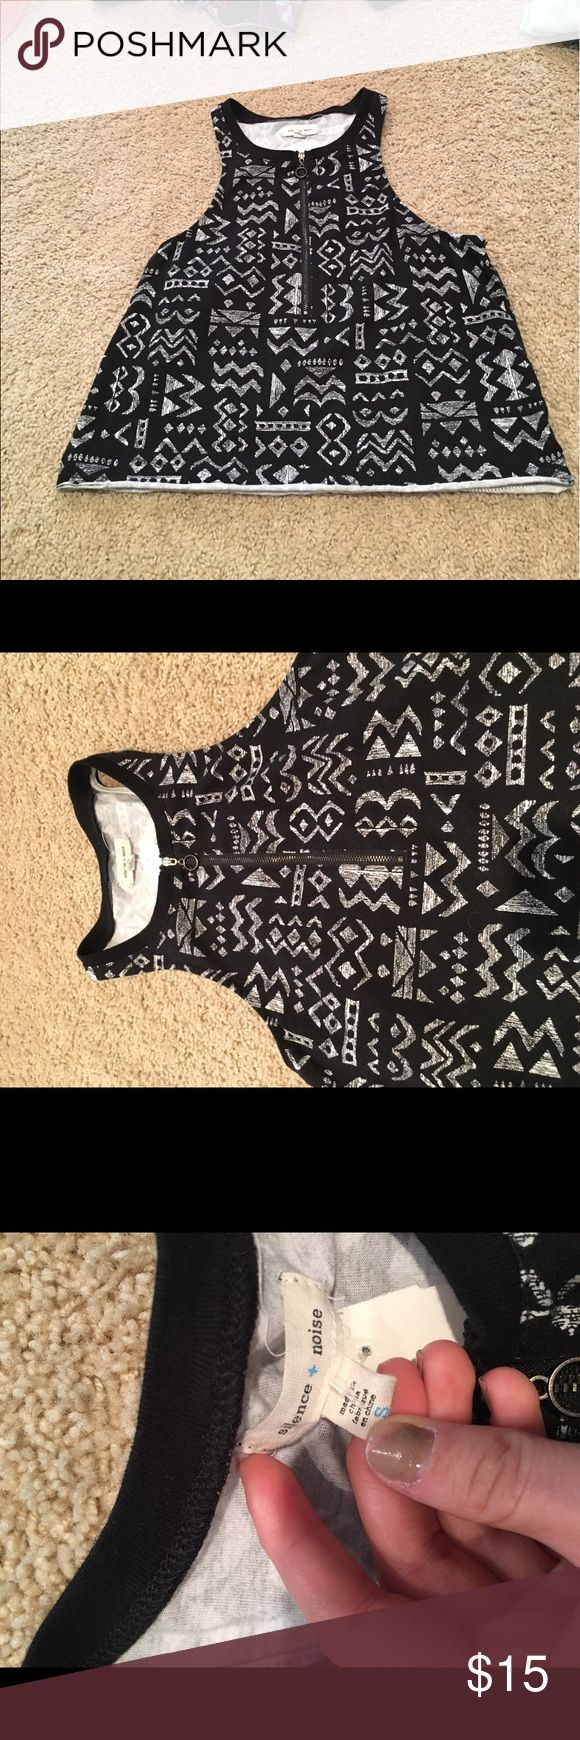 Black and white tribal high neck crop top zip up Black and white tribal high neck crop top racer back never worn zip up Urban Outfitters Tops Crop Tops